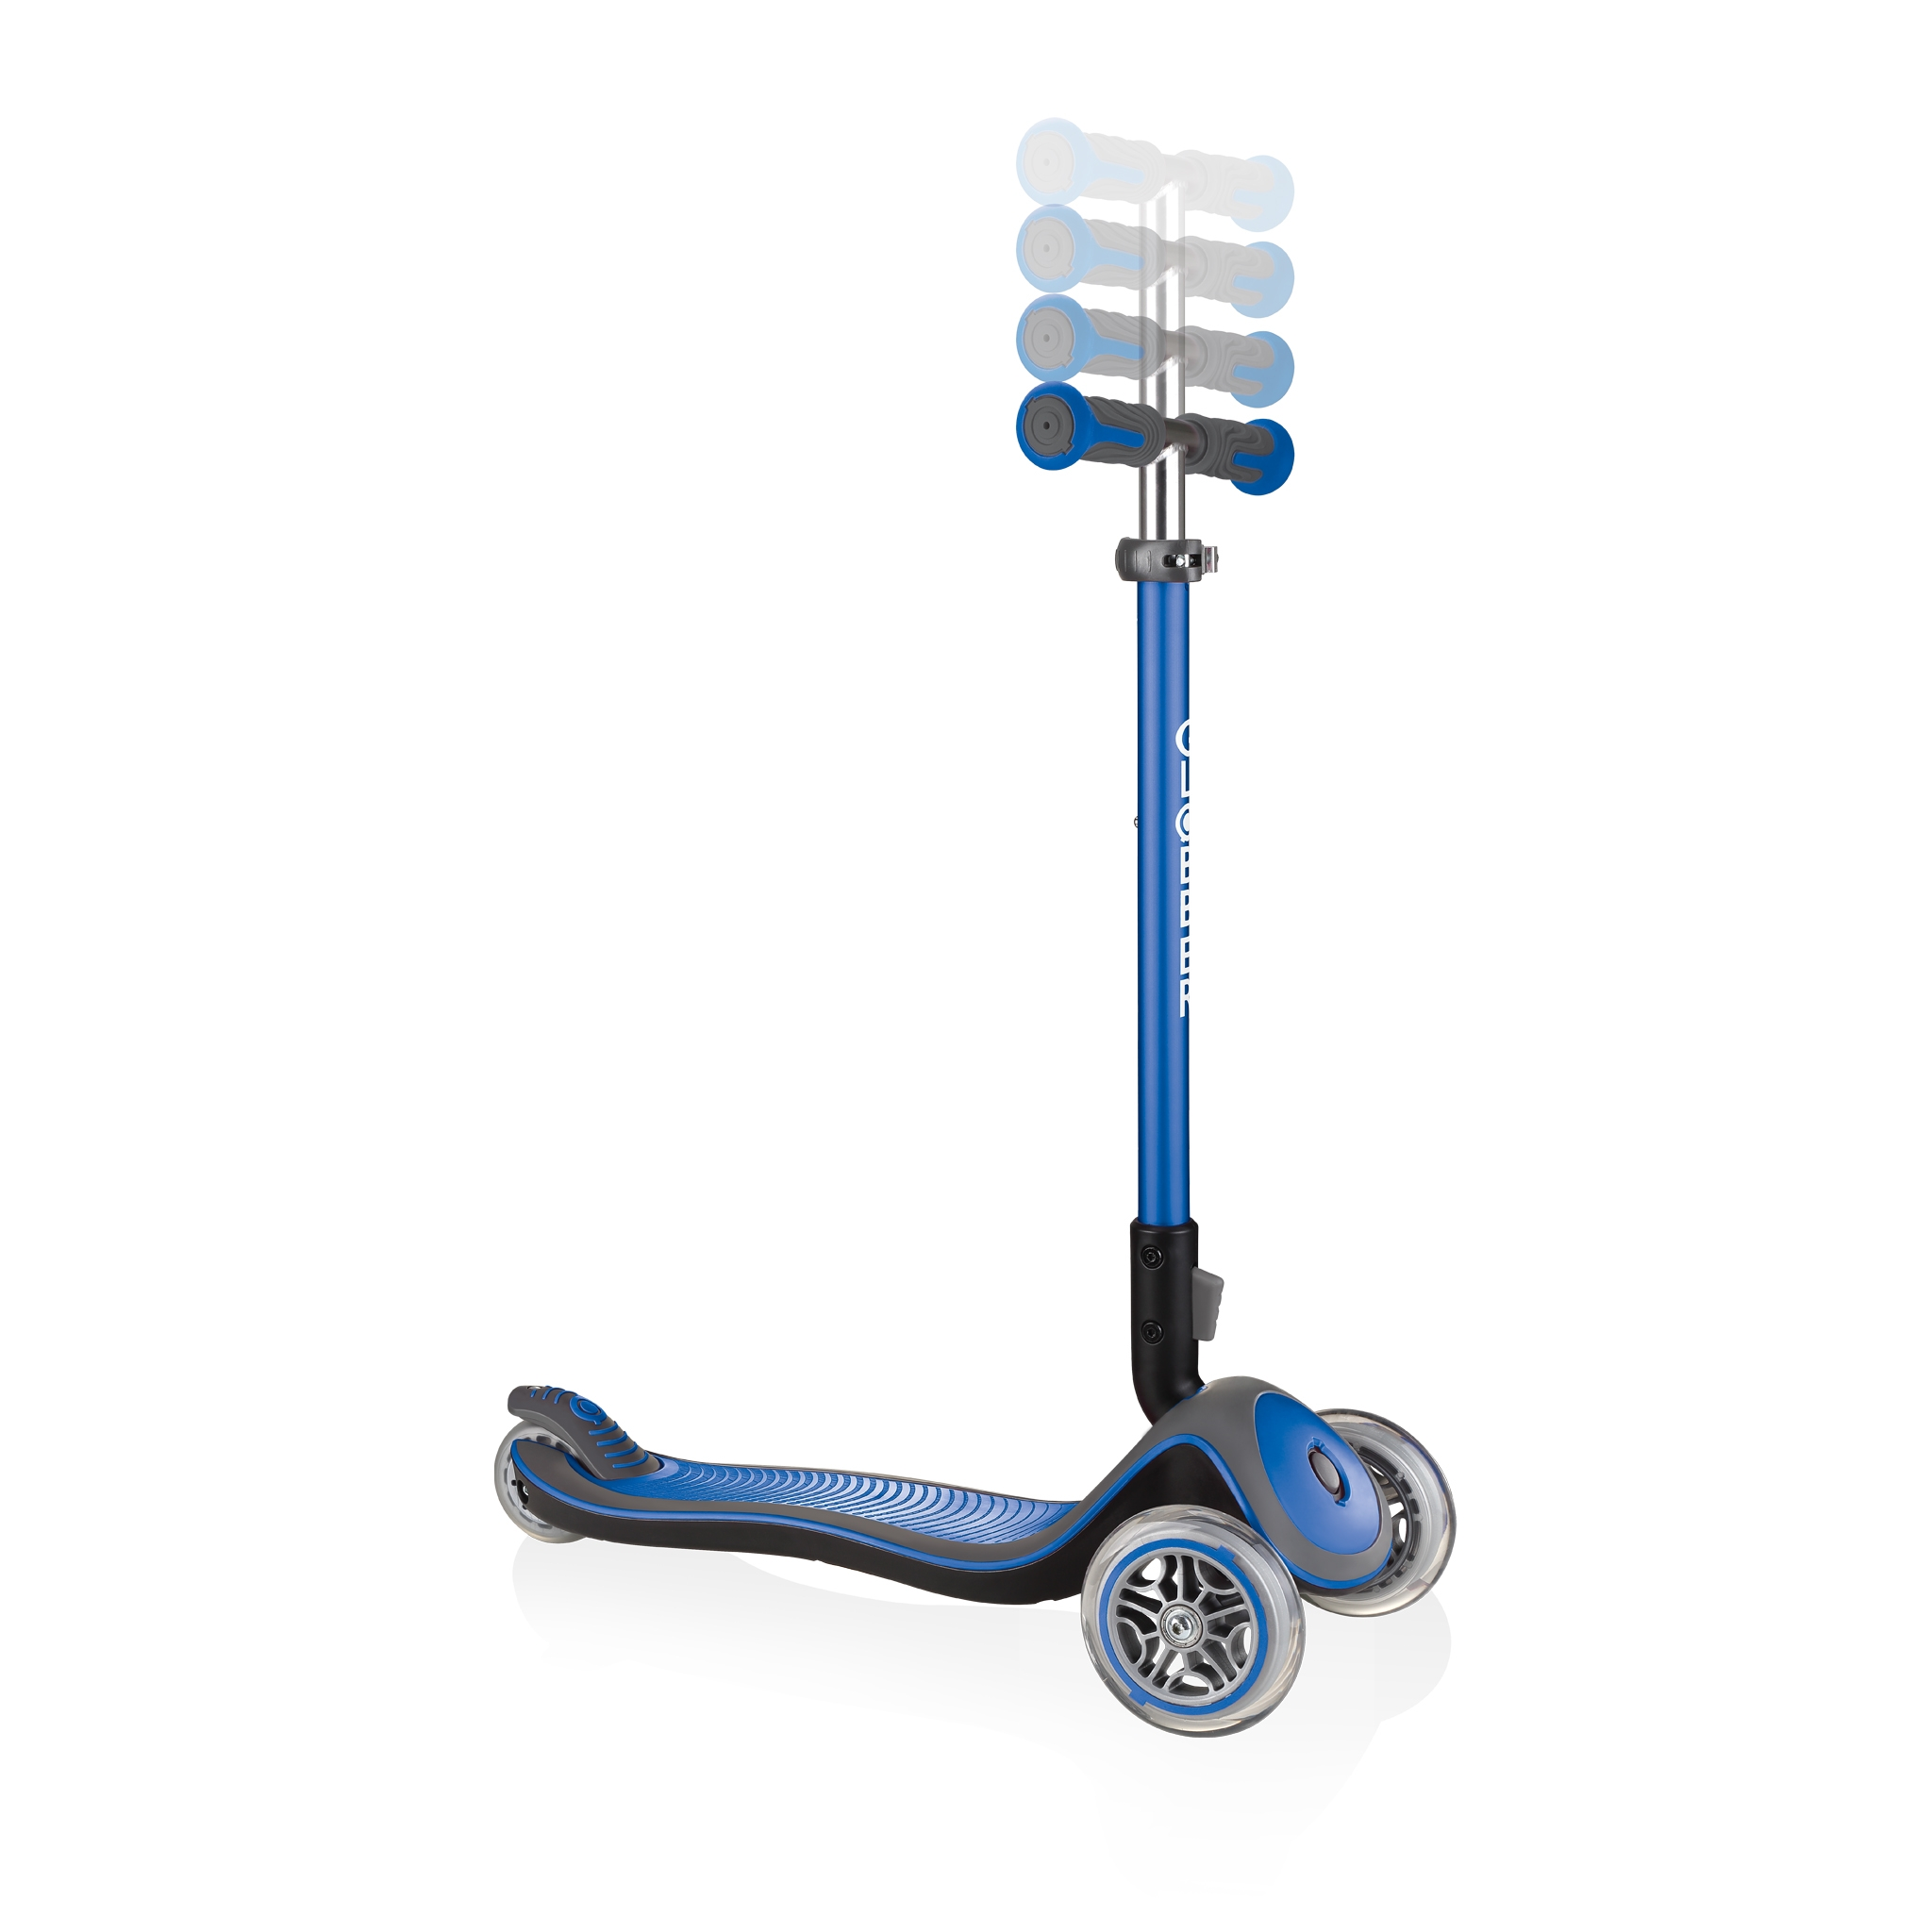 Globber-ELITE-DELUXE-3-wheel-adjustable-scooter-for-kids-with-anodized-T-bar-navy-blue